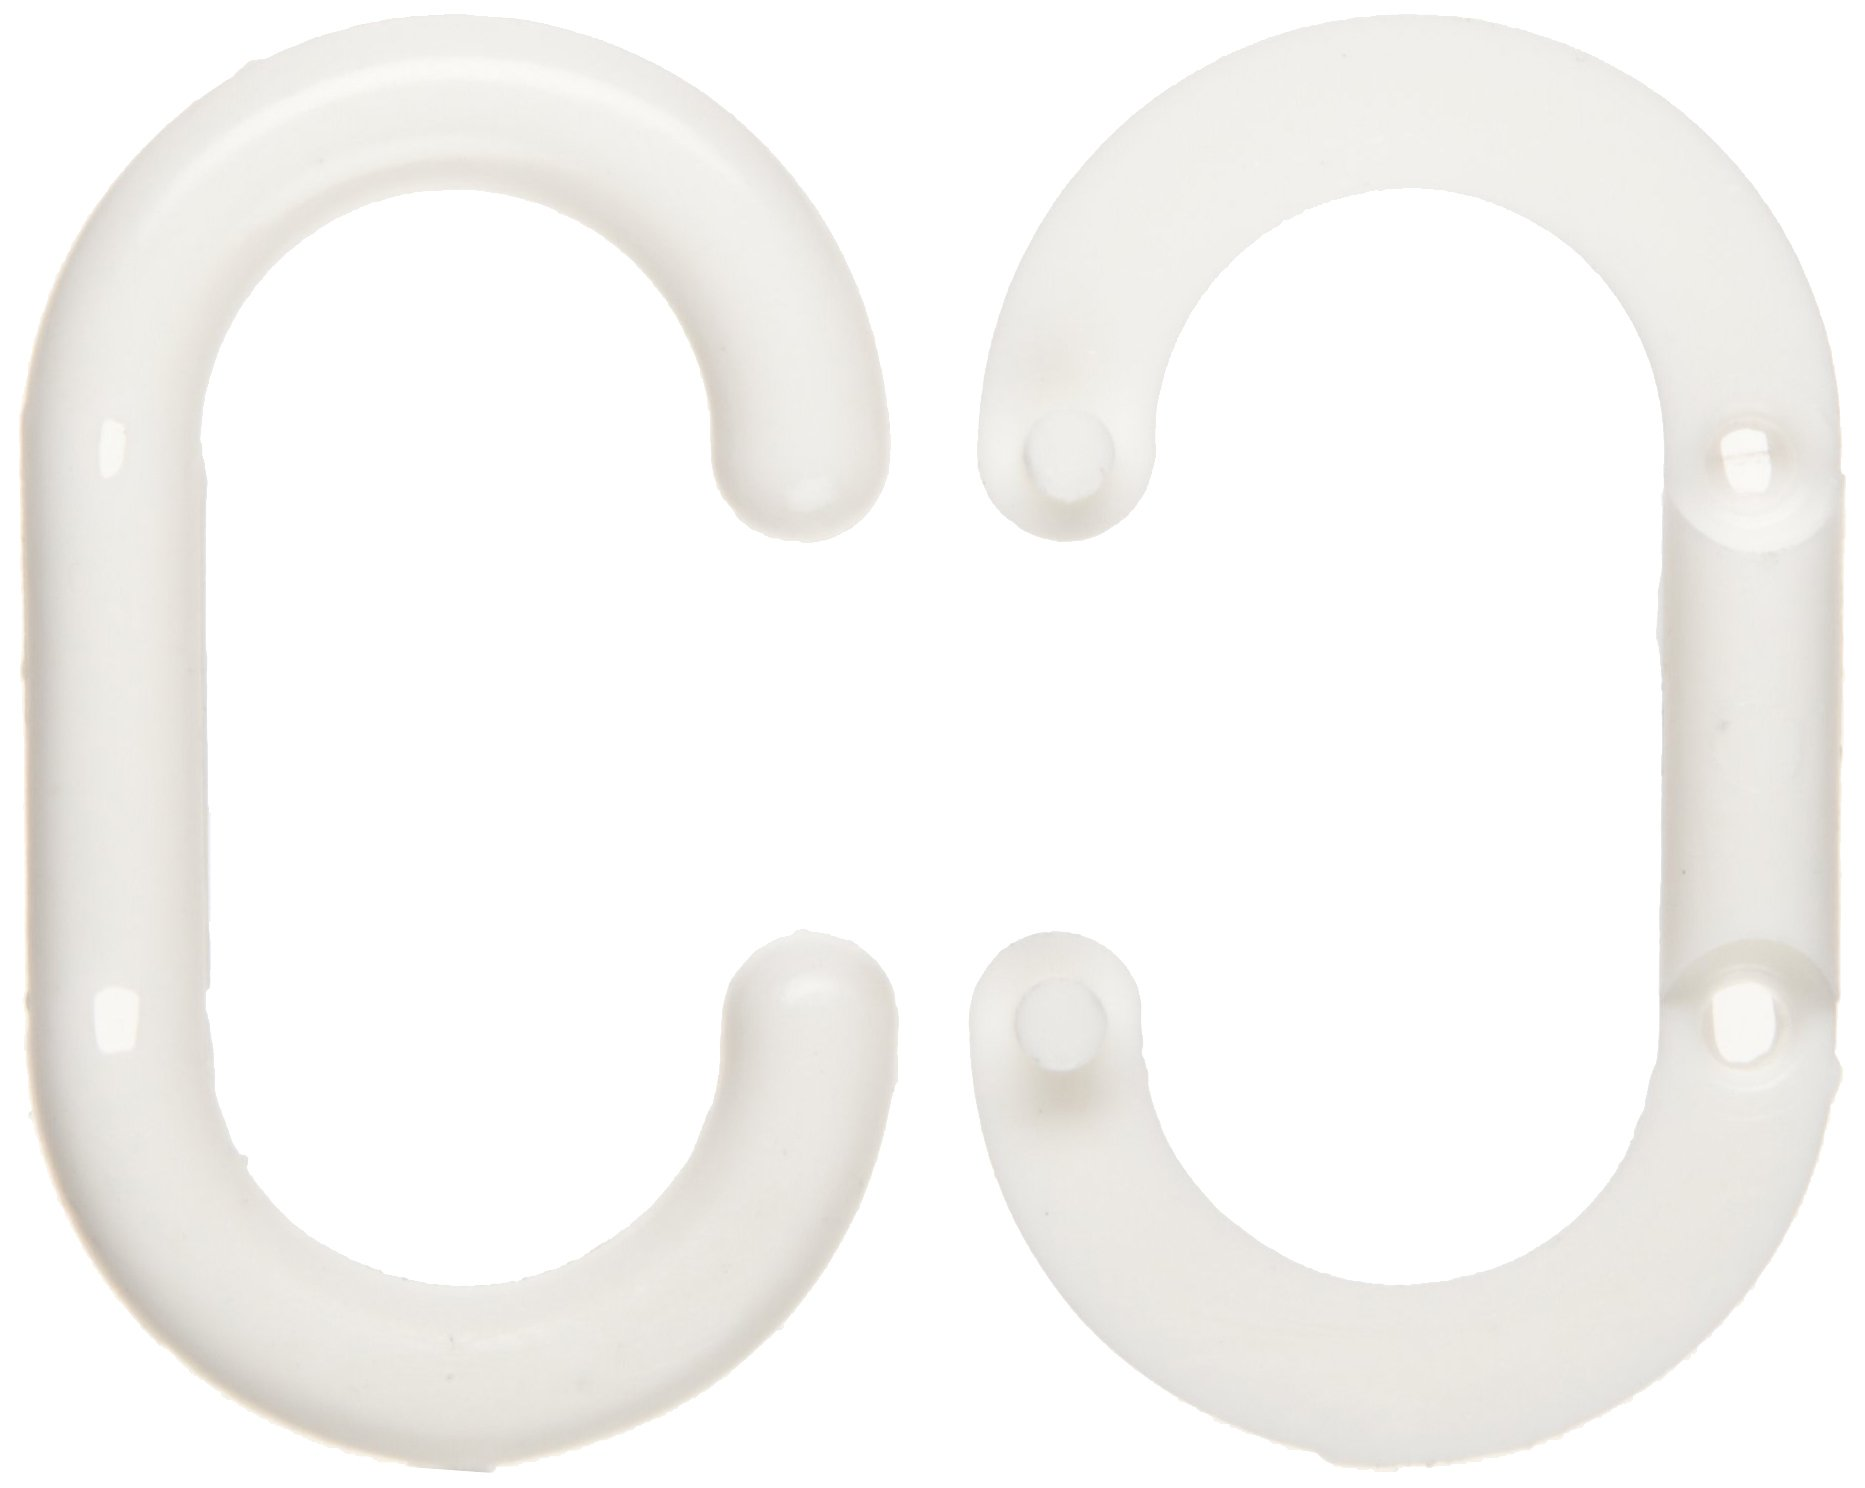 Mr. Chain 50701 White Plastic Master Link, 2'' link, 25 Count by Mr. Chain